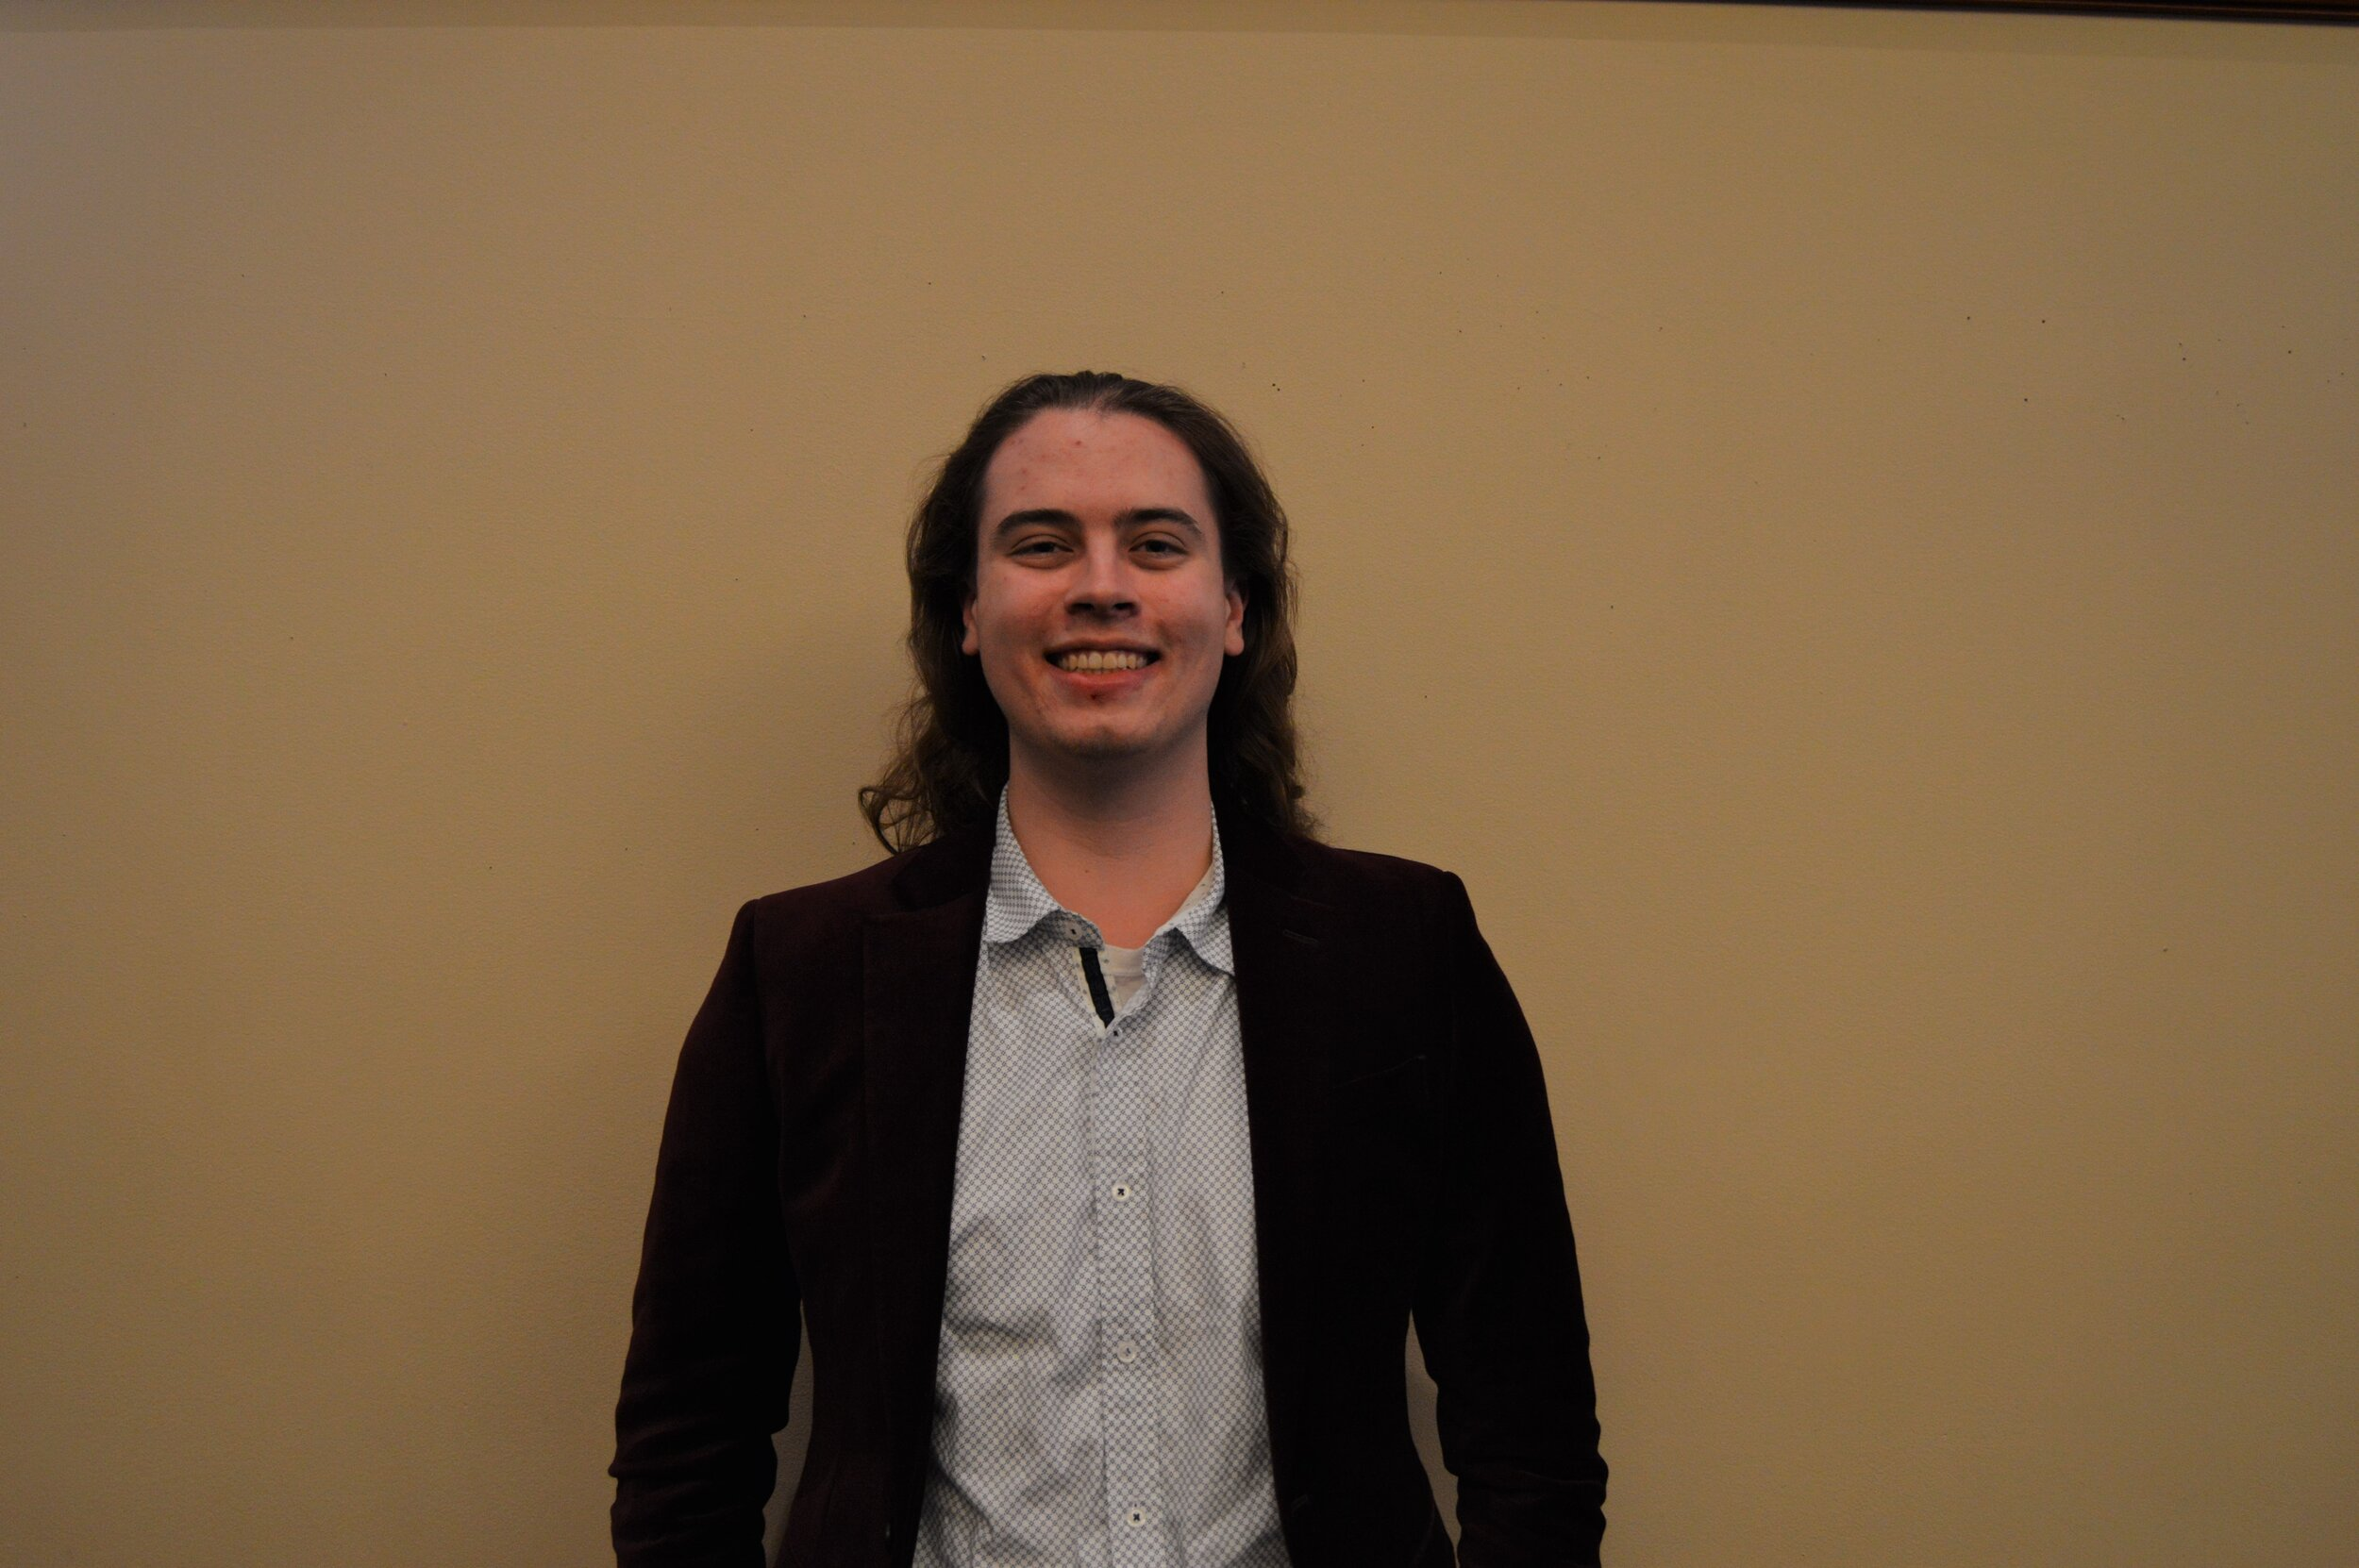 """Robert """"Rory"""" Heizelman - Class and Major: Bioengineering 21'UTSG Position: Elected senator, Public Relations Secretary Email: robert.heizelman2@rockets.utoledo.eduBiography: I am a man of mystery. (WIP)UTSG Committees: Campus Culture, ExternalCampus Involvement: Tau Beta Pi, SAC, Engineers without BordersOn Campus Goals: I'm a nihilist I have no goals. (WIP)Favorite Color: Purple or Blue"""